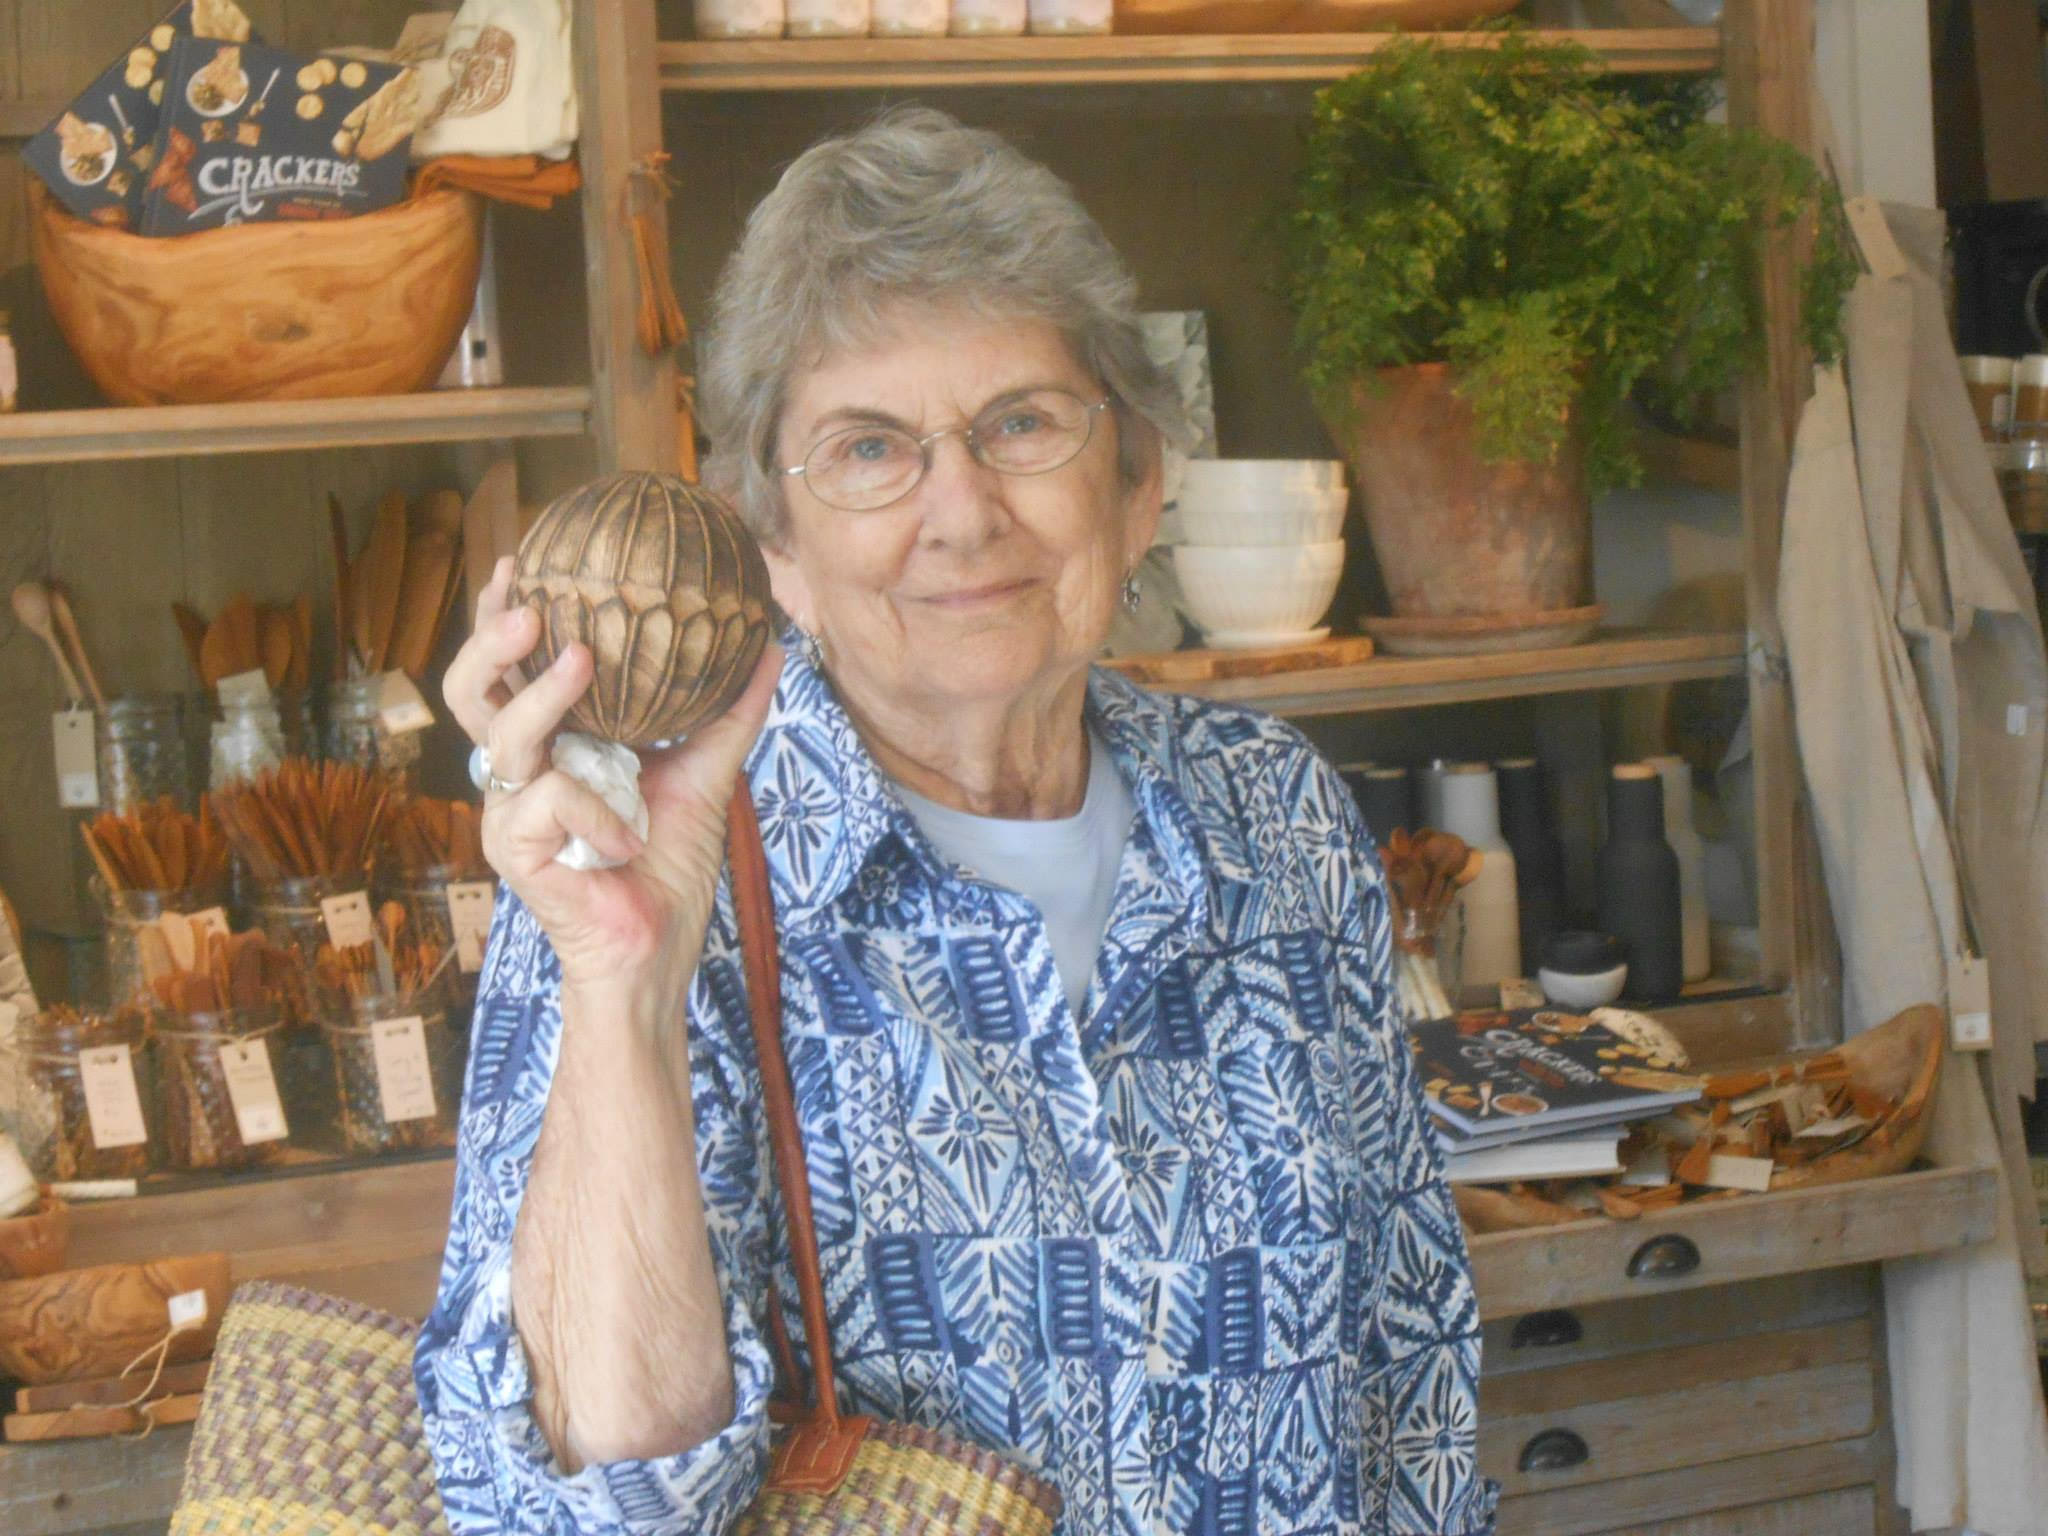 """Bambi's Experience - Sold a home in Carpinteria, CA""""Sofie and Charles — you always get things just right. You helped me with the sale of my home and the price was much more than I expected. Because of this, I was able to downsize into my new space and enjoy looking at the mountains I hiked in during my much younger years. It's peaceful and relaxing here. Thanks for all the extra time and help you gave me during both escrows/ sales/ purchases. You kept me on the right track and I will always be grateful."""""""